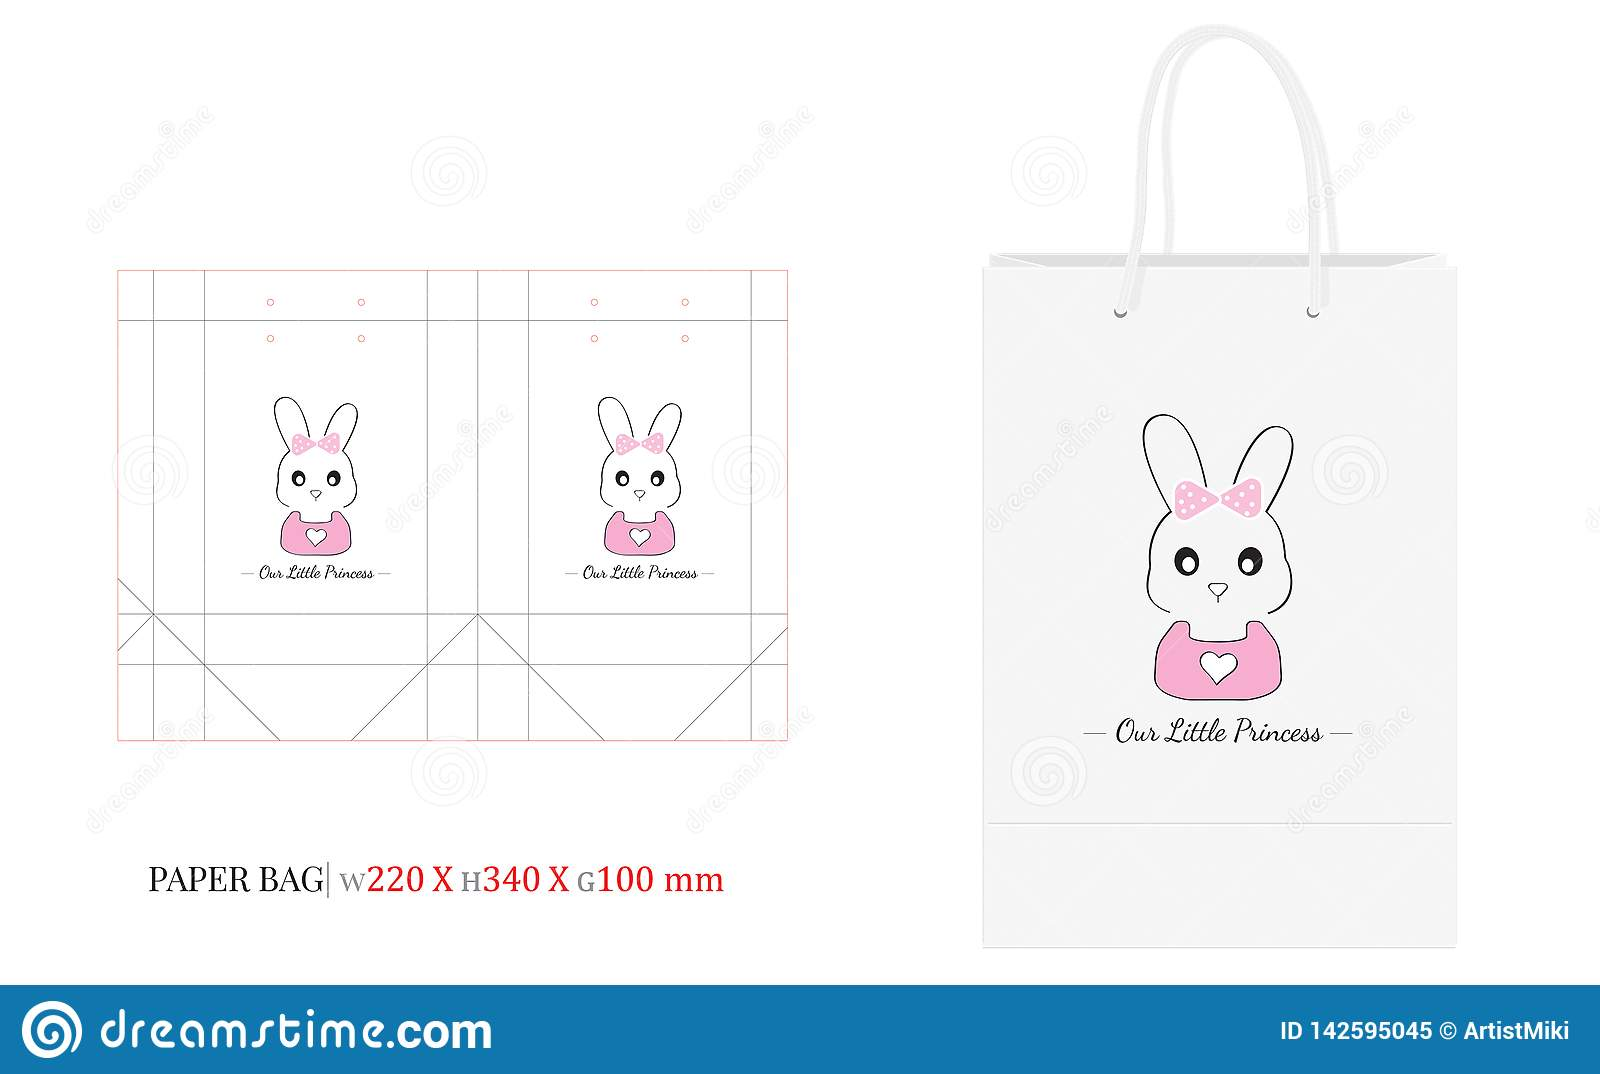 PAPER BAG Template. Vector with die cut / laser cut lines. Happy Birthday Girl